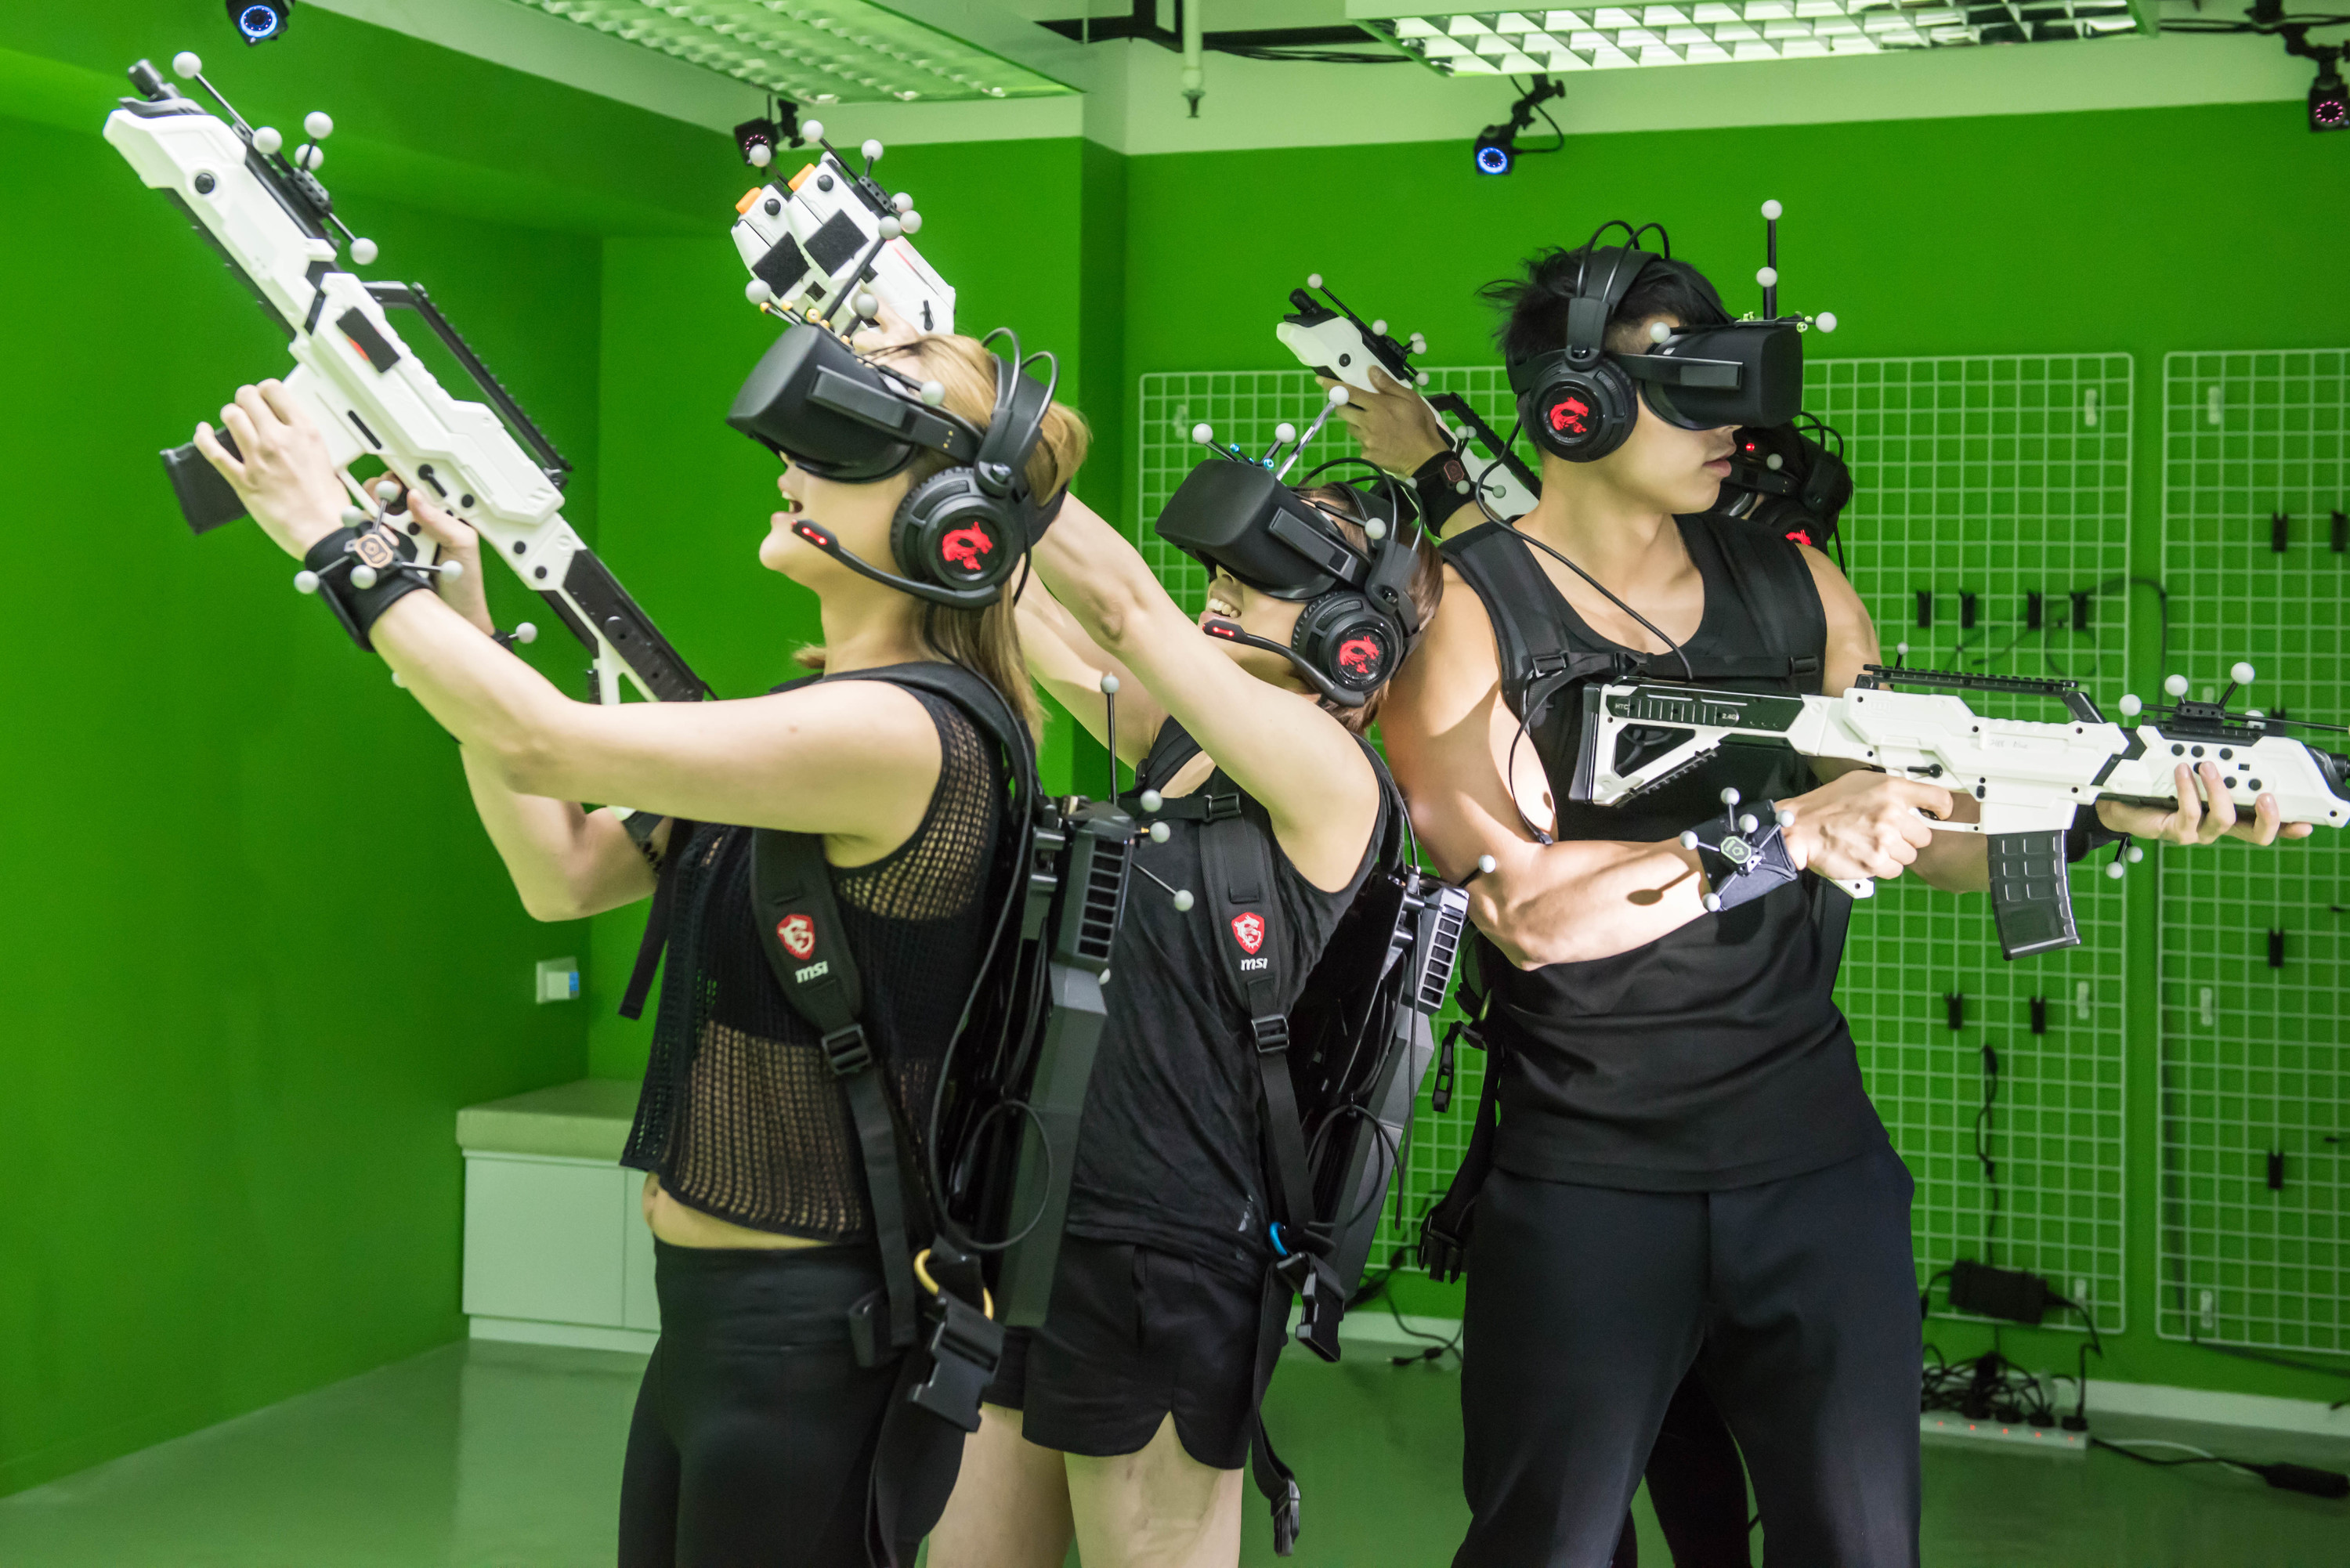 Five awesome VR experiences to try in Hong Kong